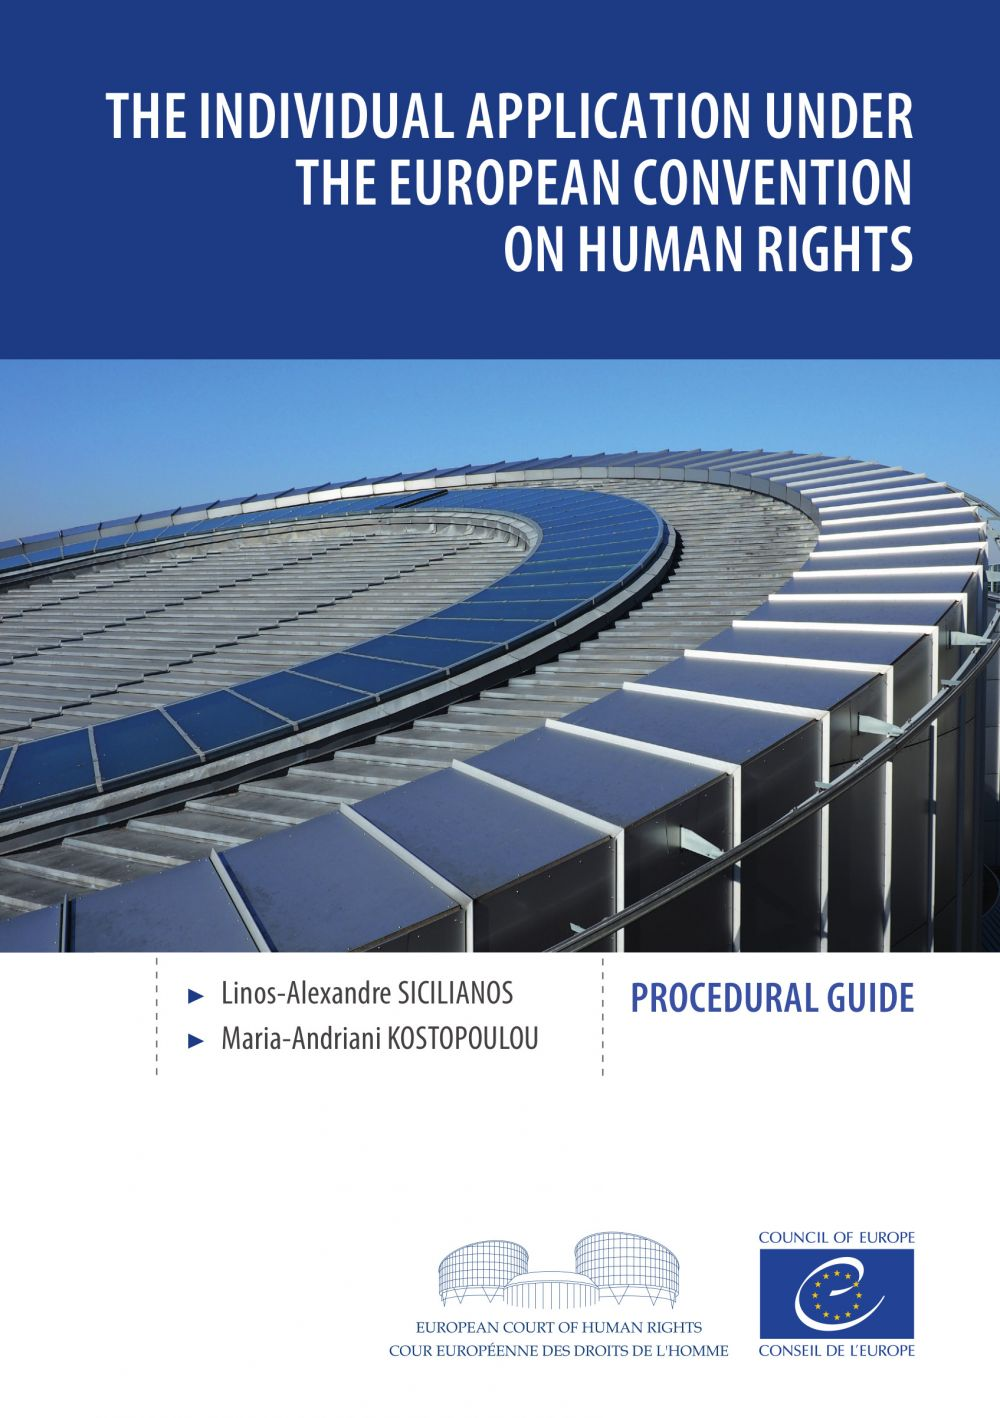 The individual application under the European Convention on Human Rights